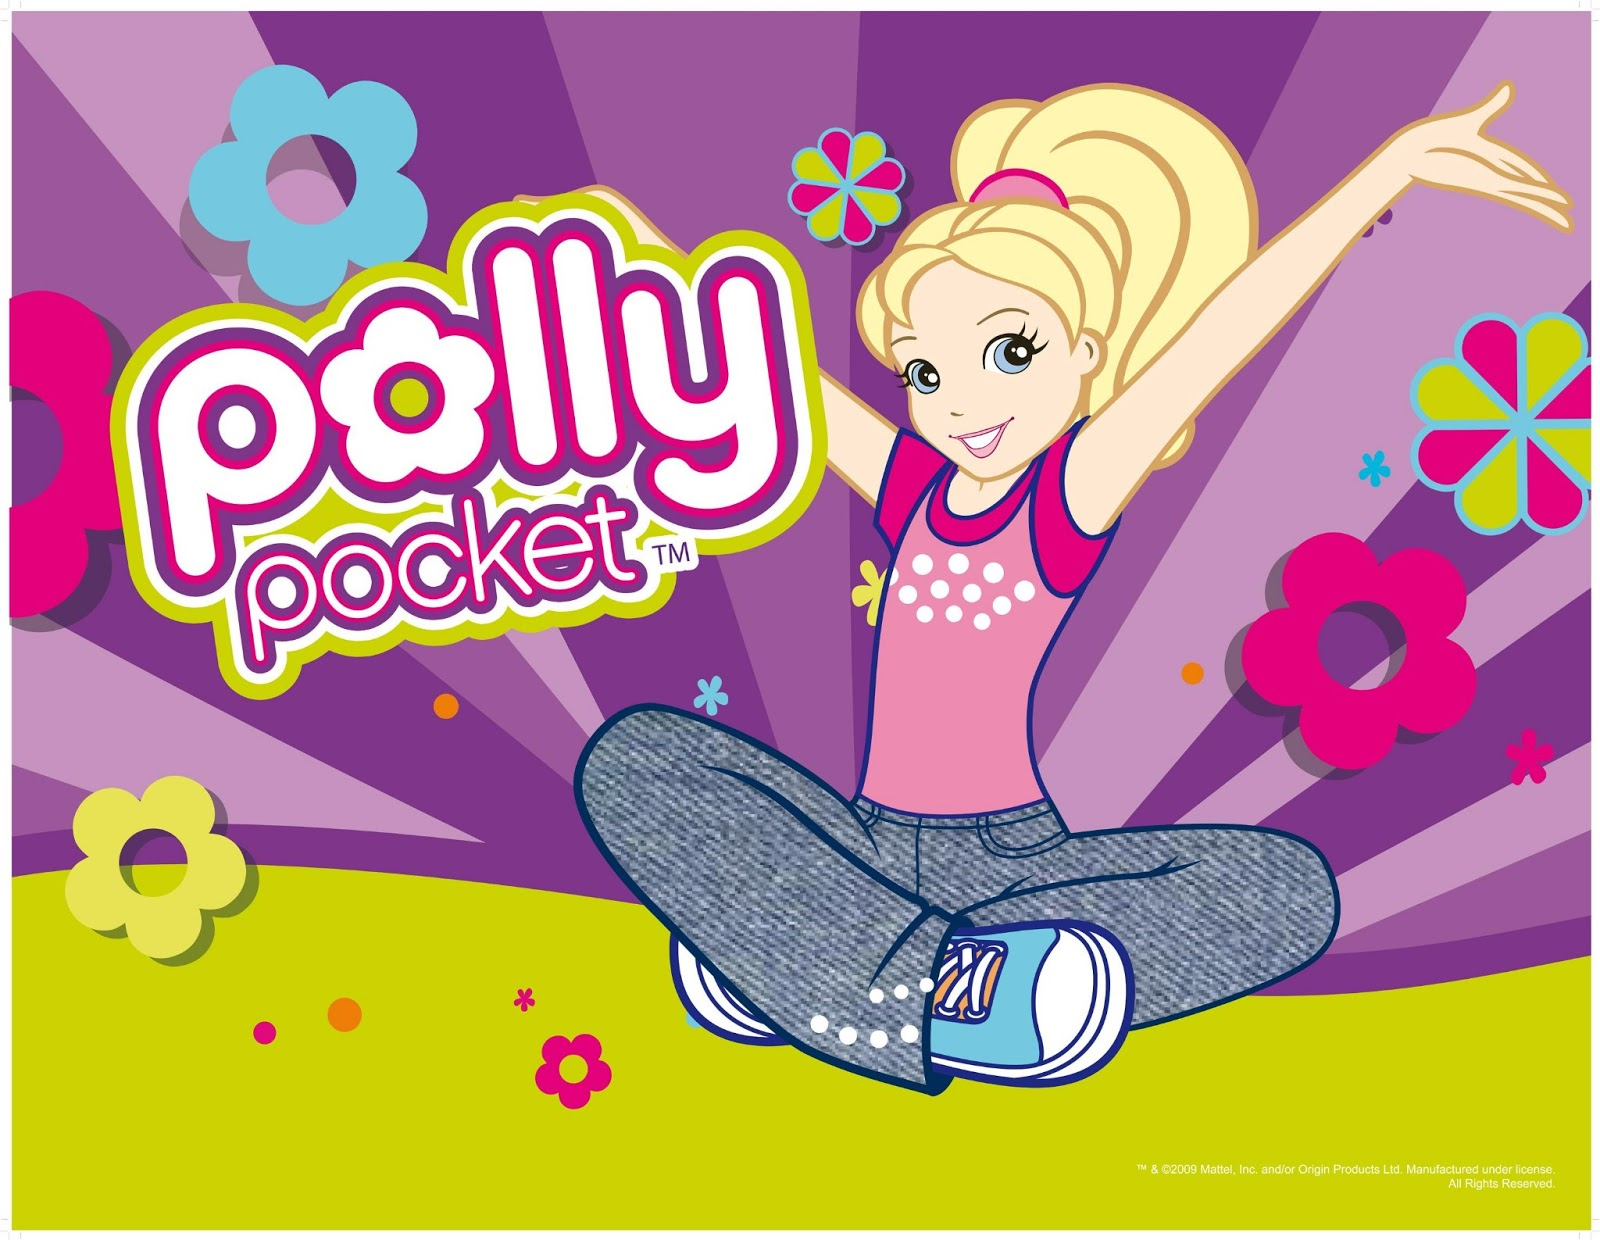 Besttipsforus Polly Pocket The First Best Video Game